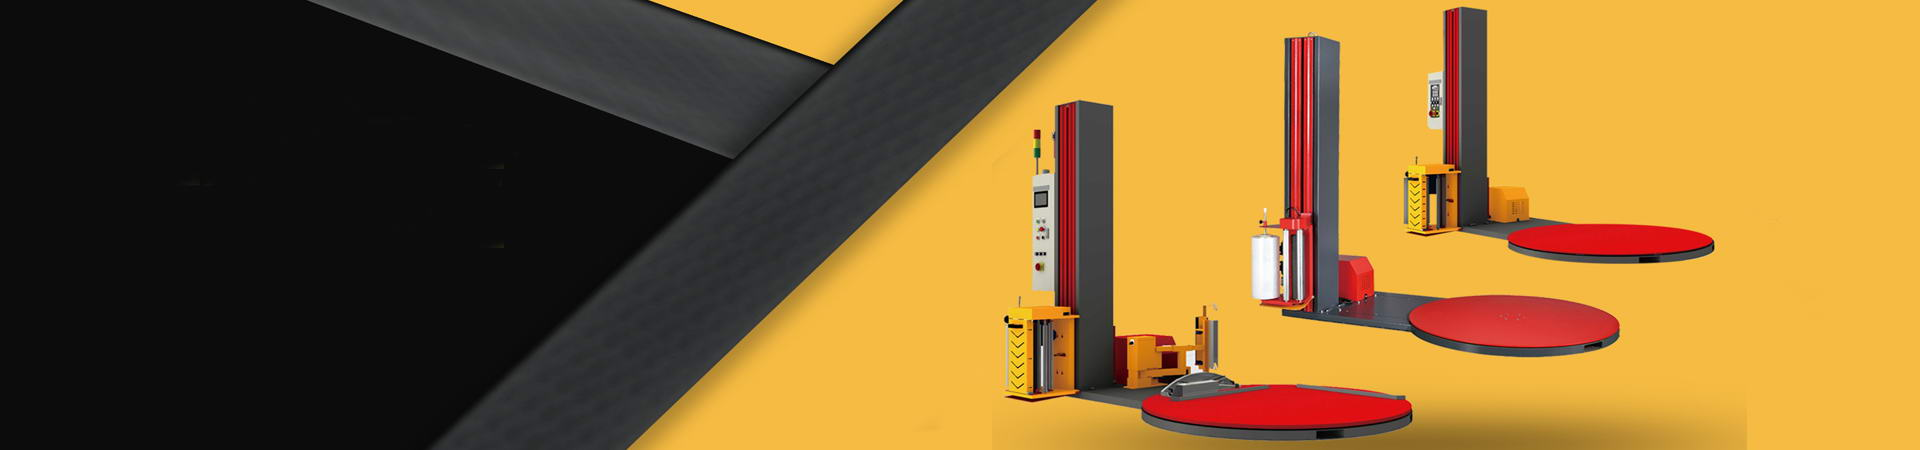 Pallet Wrapping Equipment